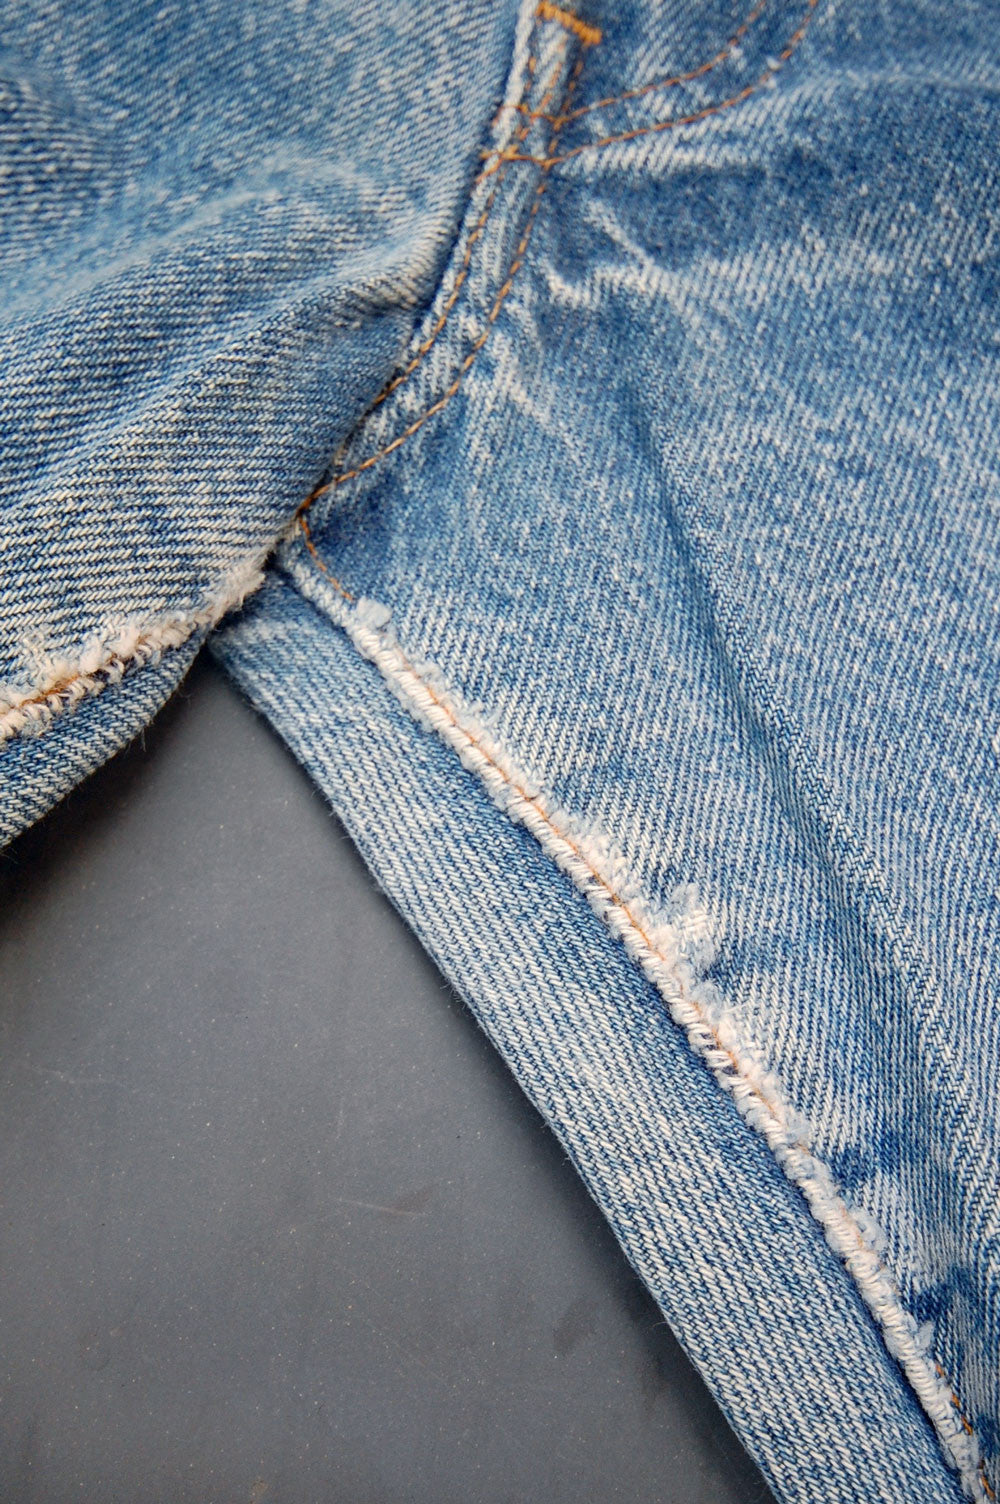 Vintage Levi's 501 USA Transitional Super Whiskered Denim Jeans